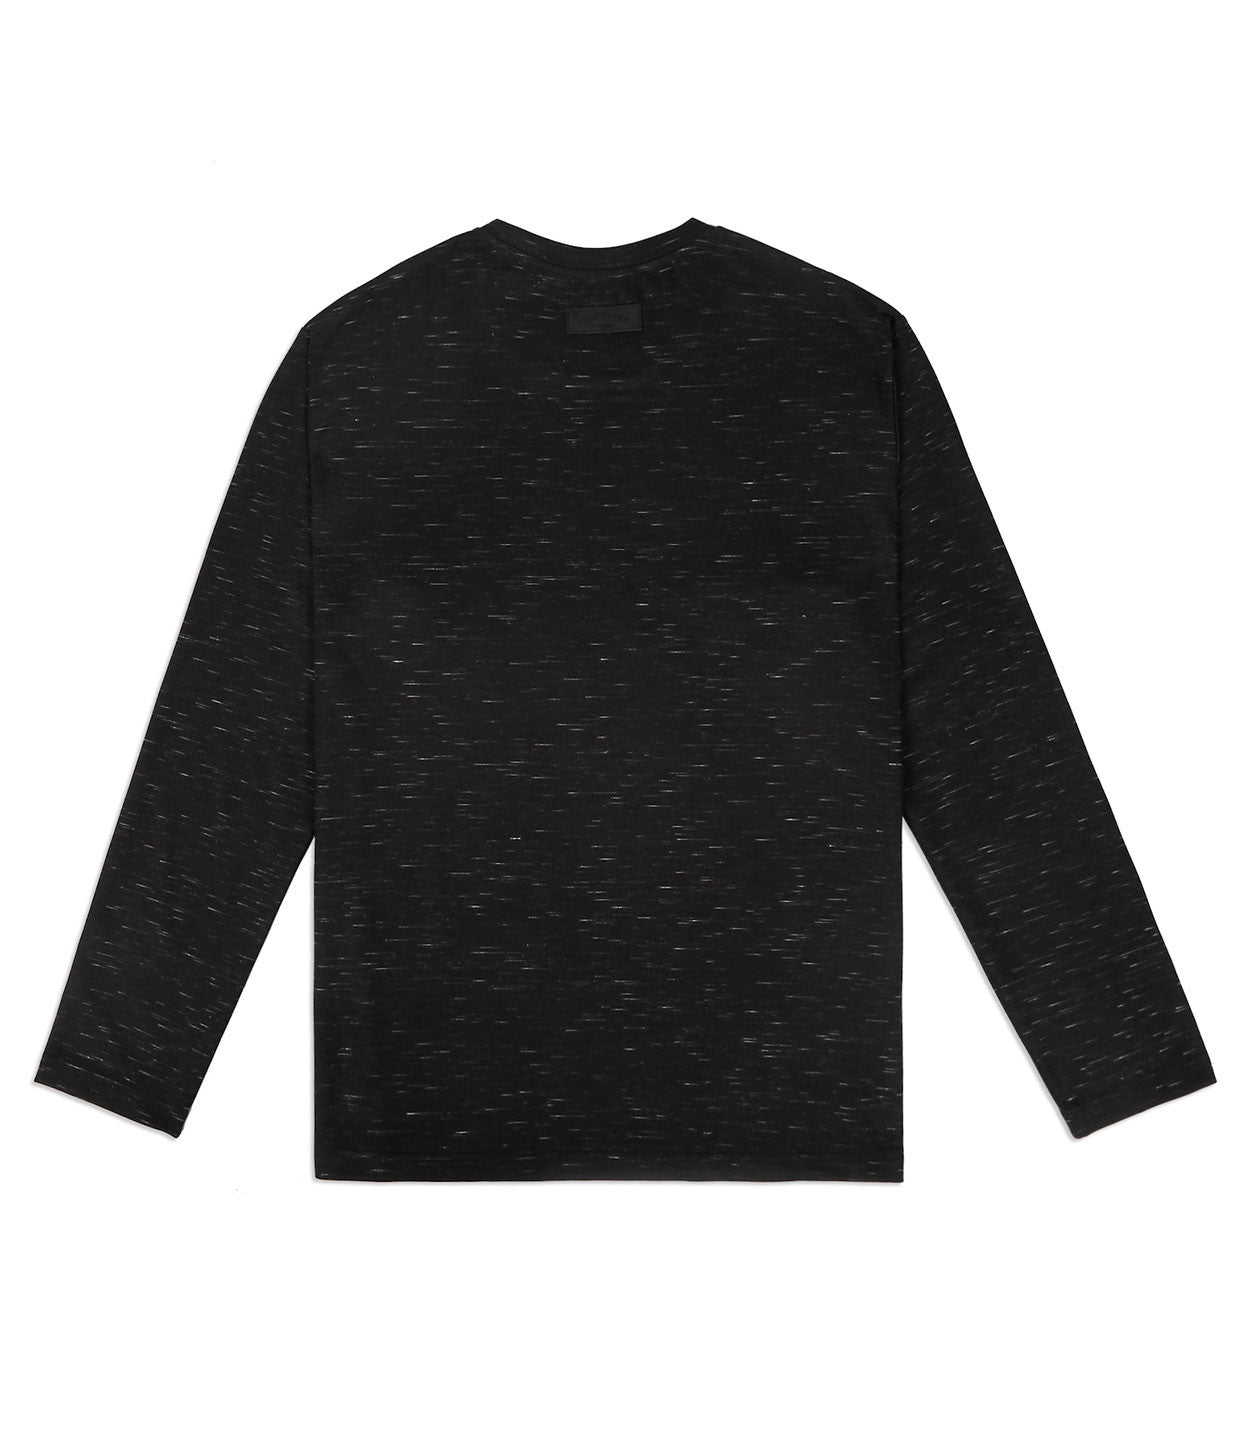 TS379 Knit Jersey L/S Tee - Black - underated london - underatedco - 7